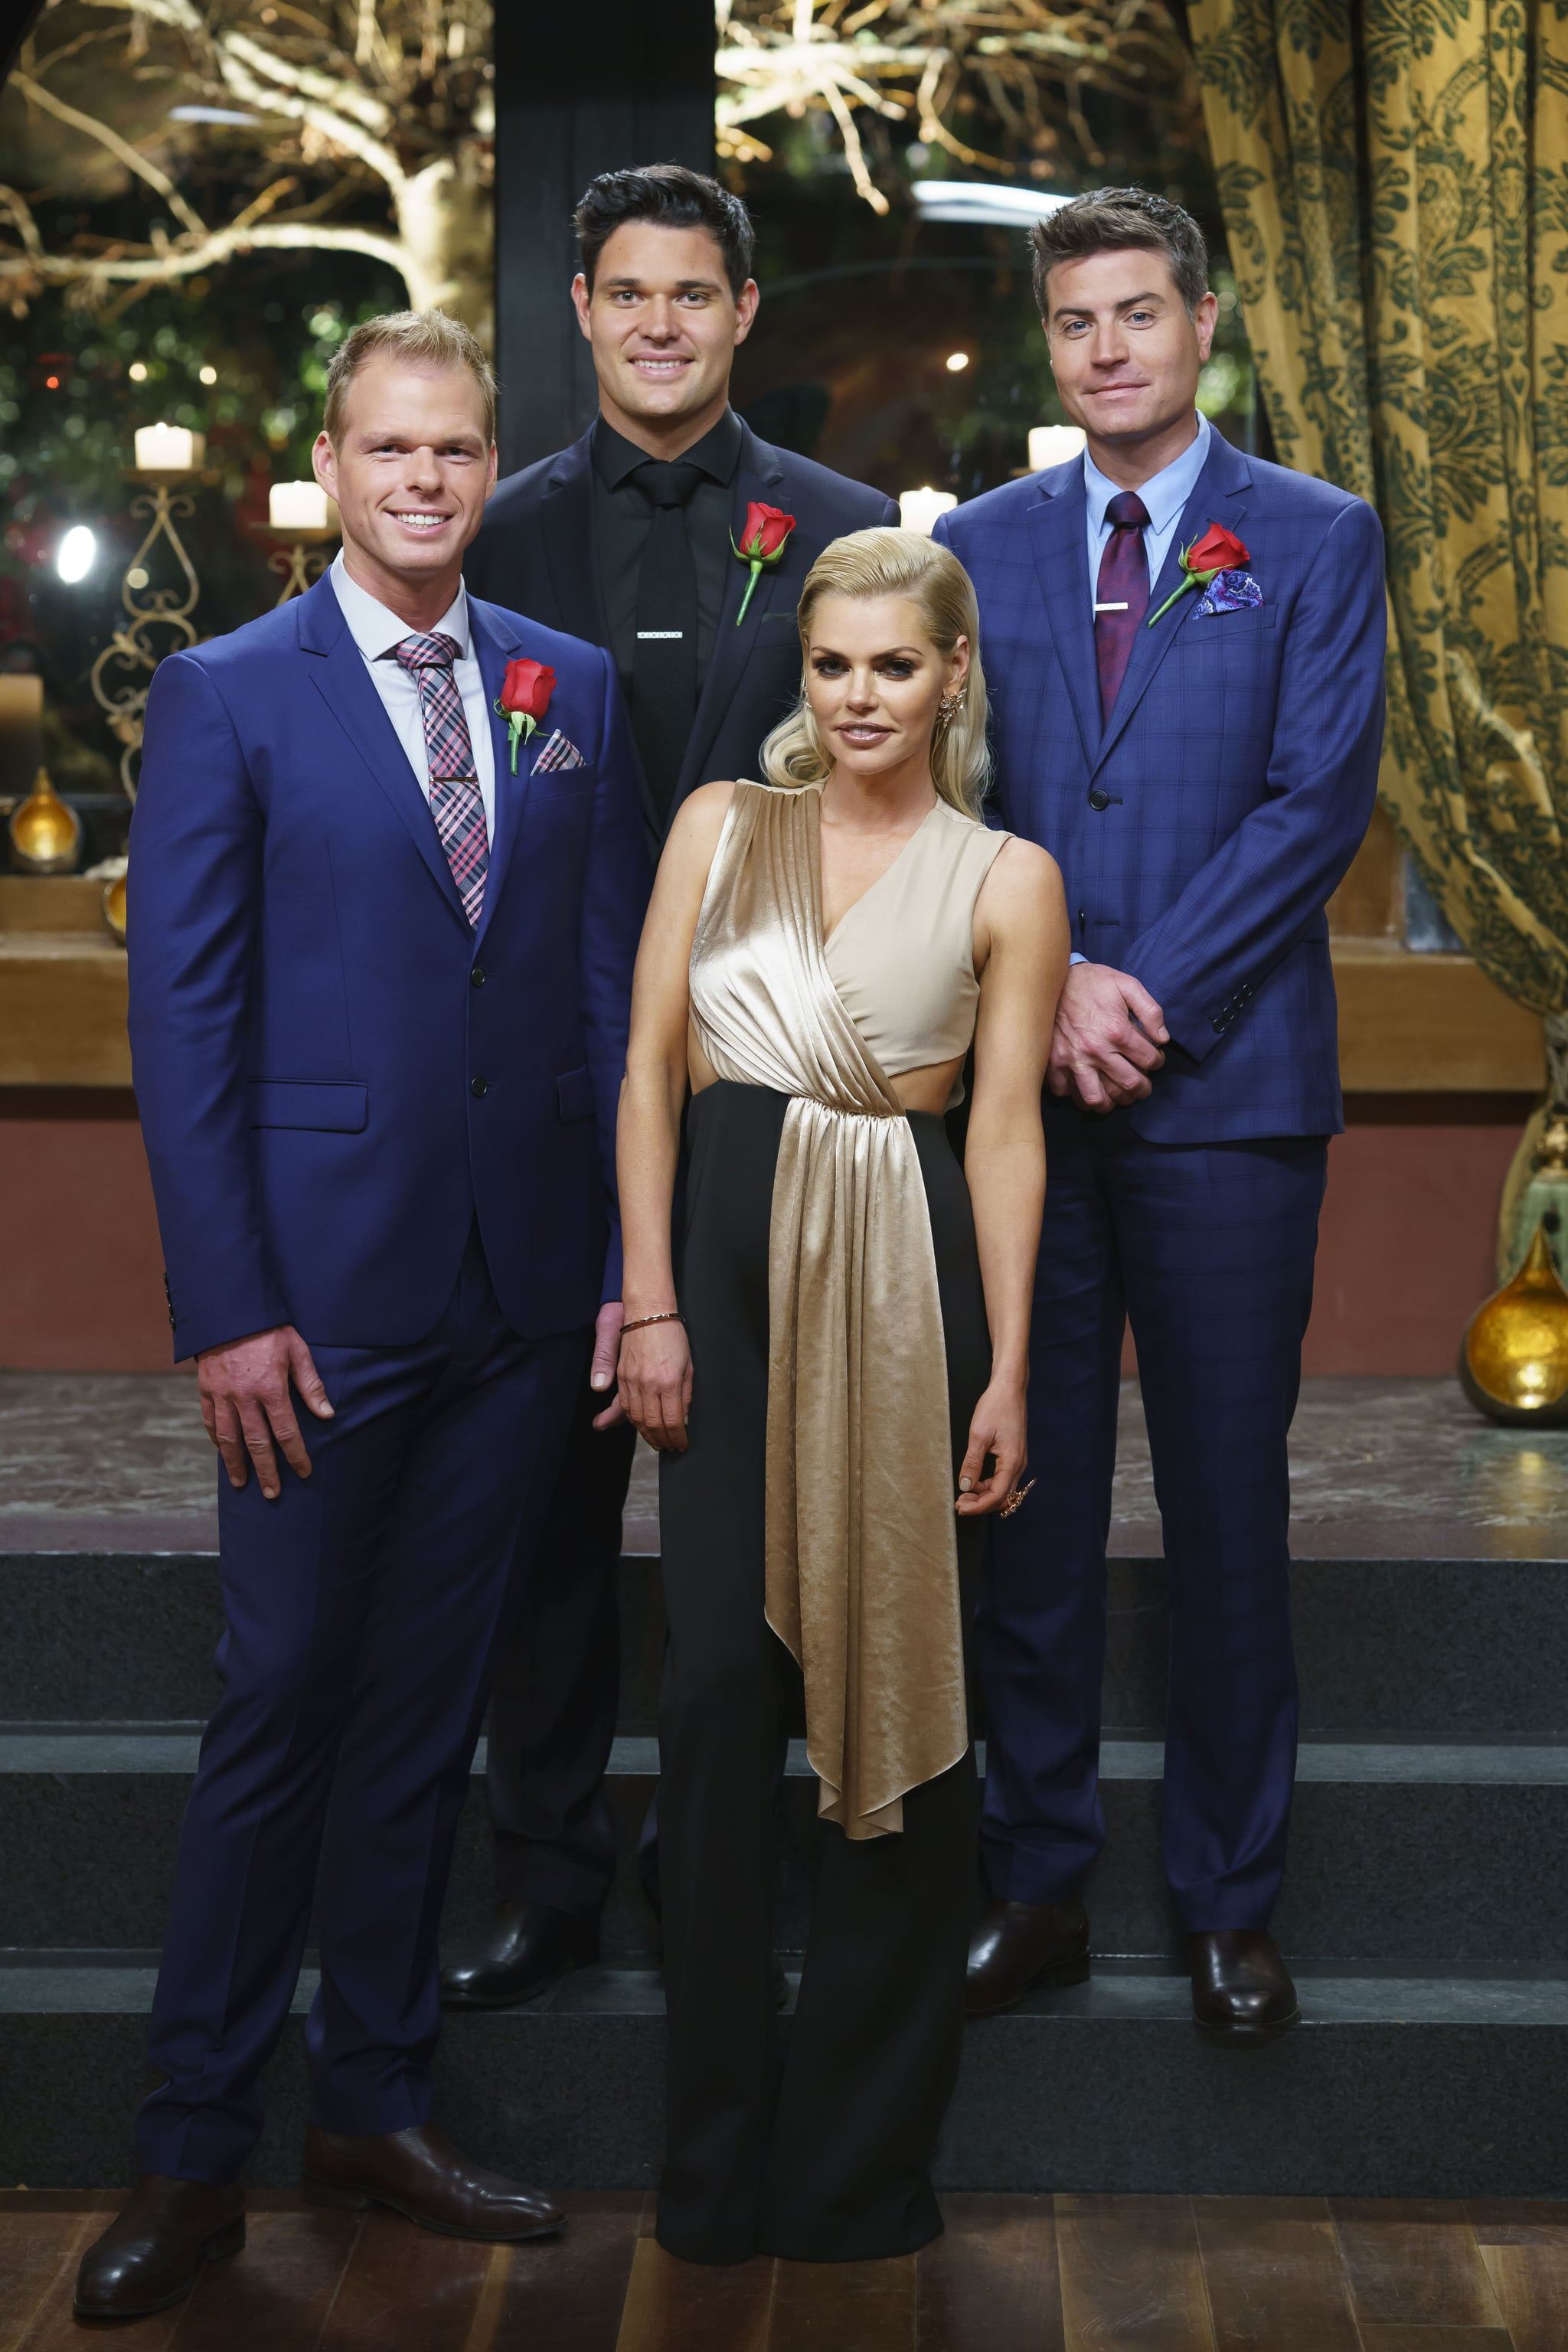 The Bachelorette Australia 2017 Episode 11 Recap